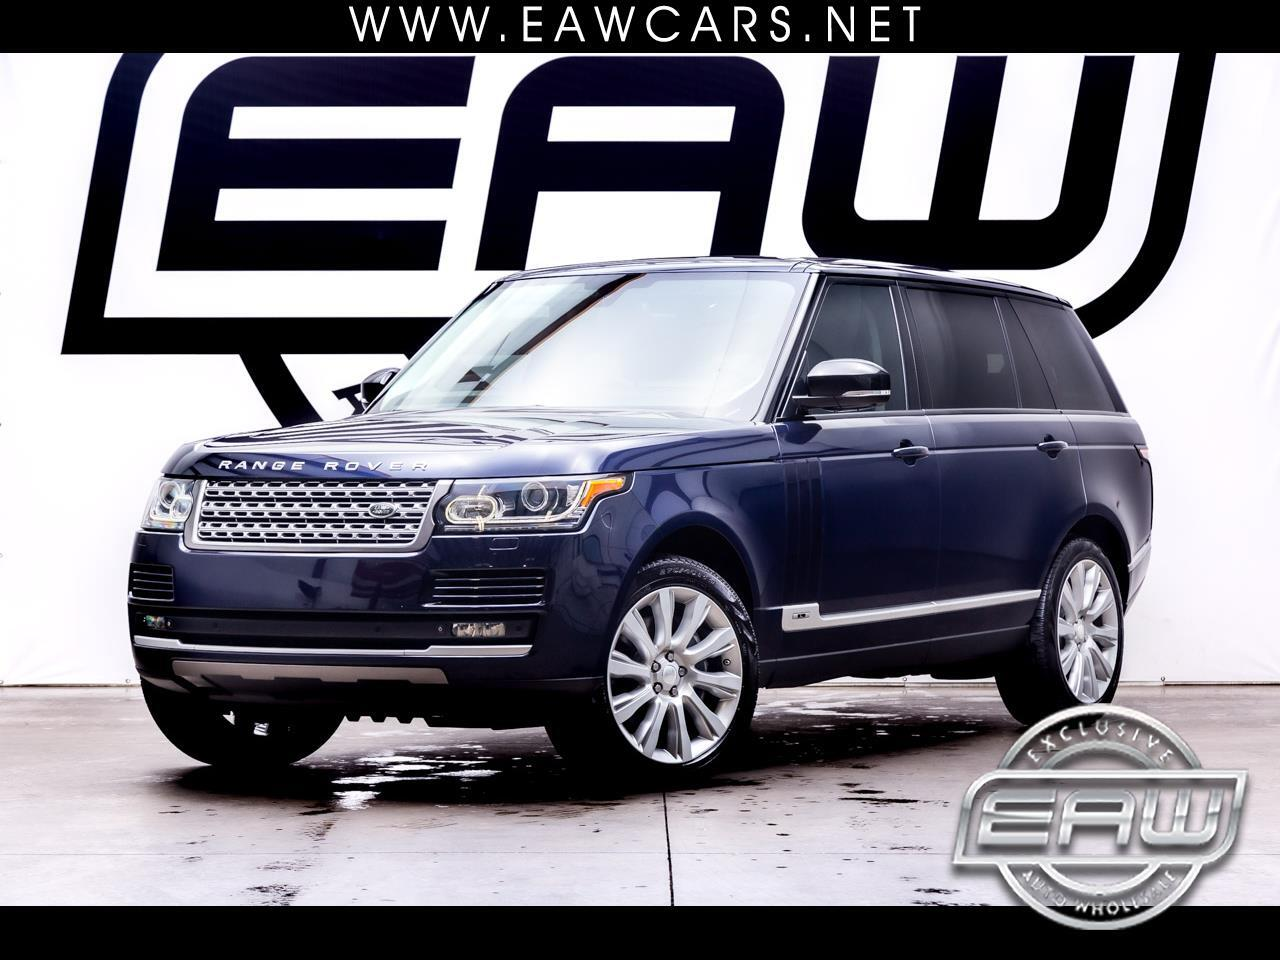 Land Rover Range Rover 4WD 4dr Supercharged LWB 2014